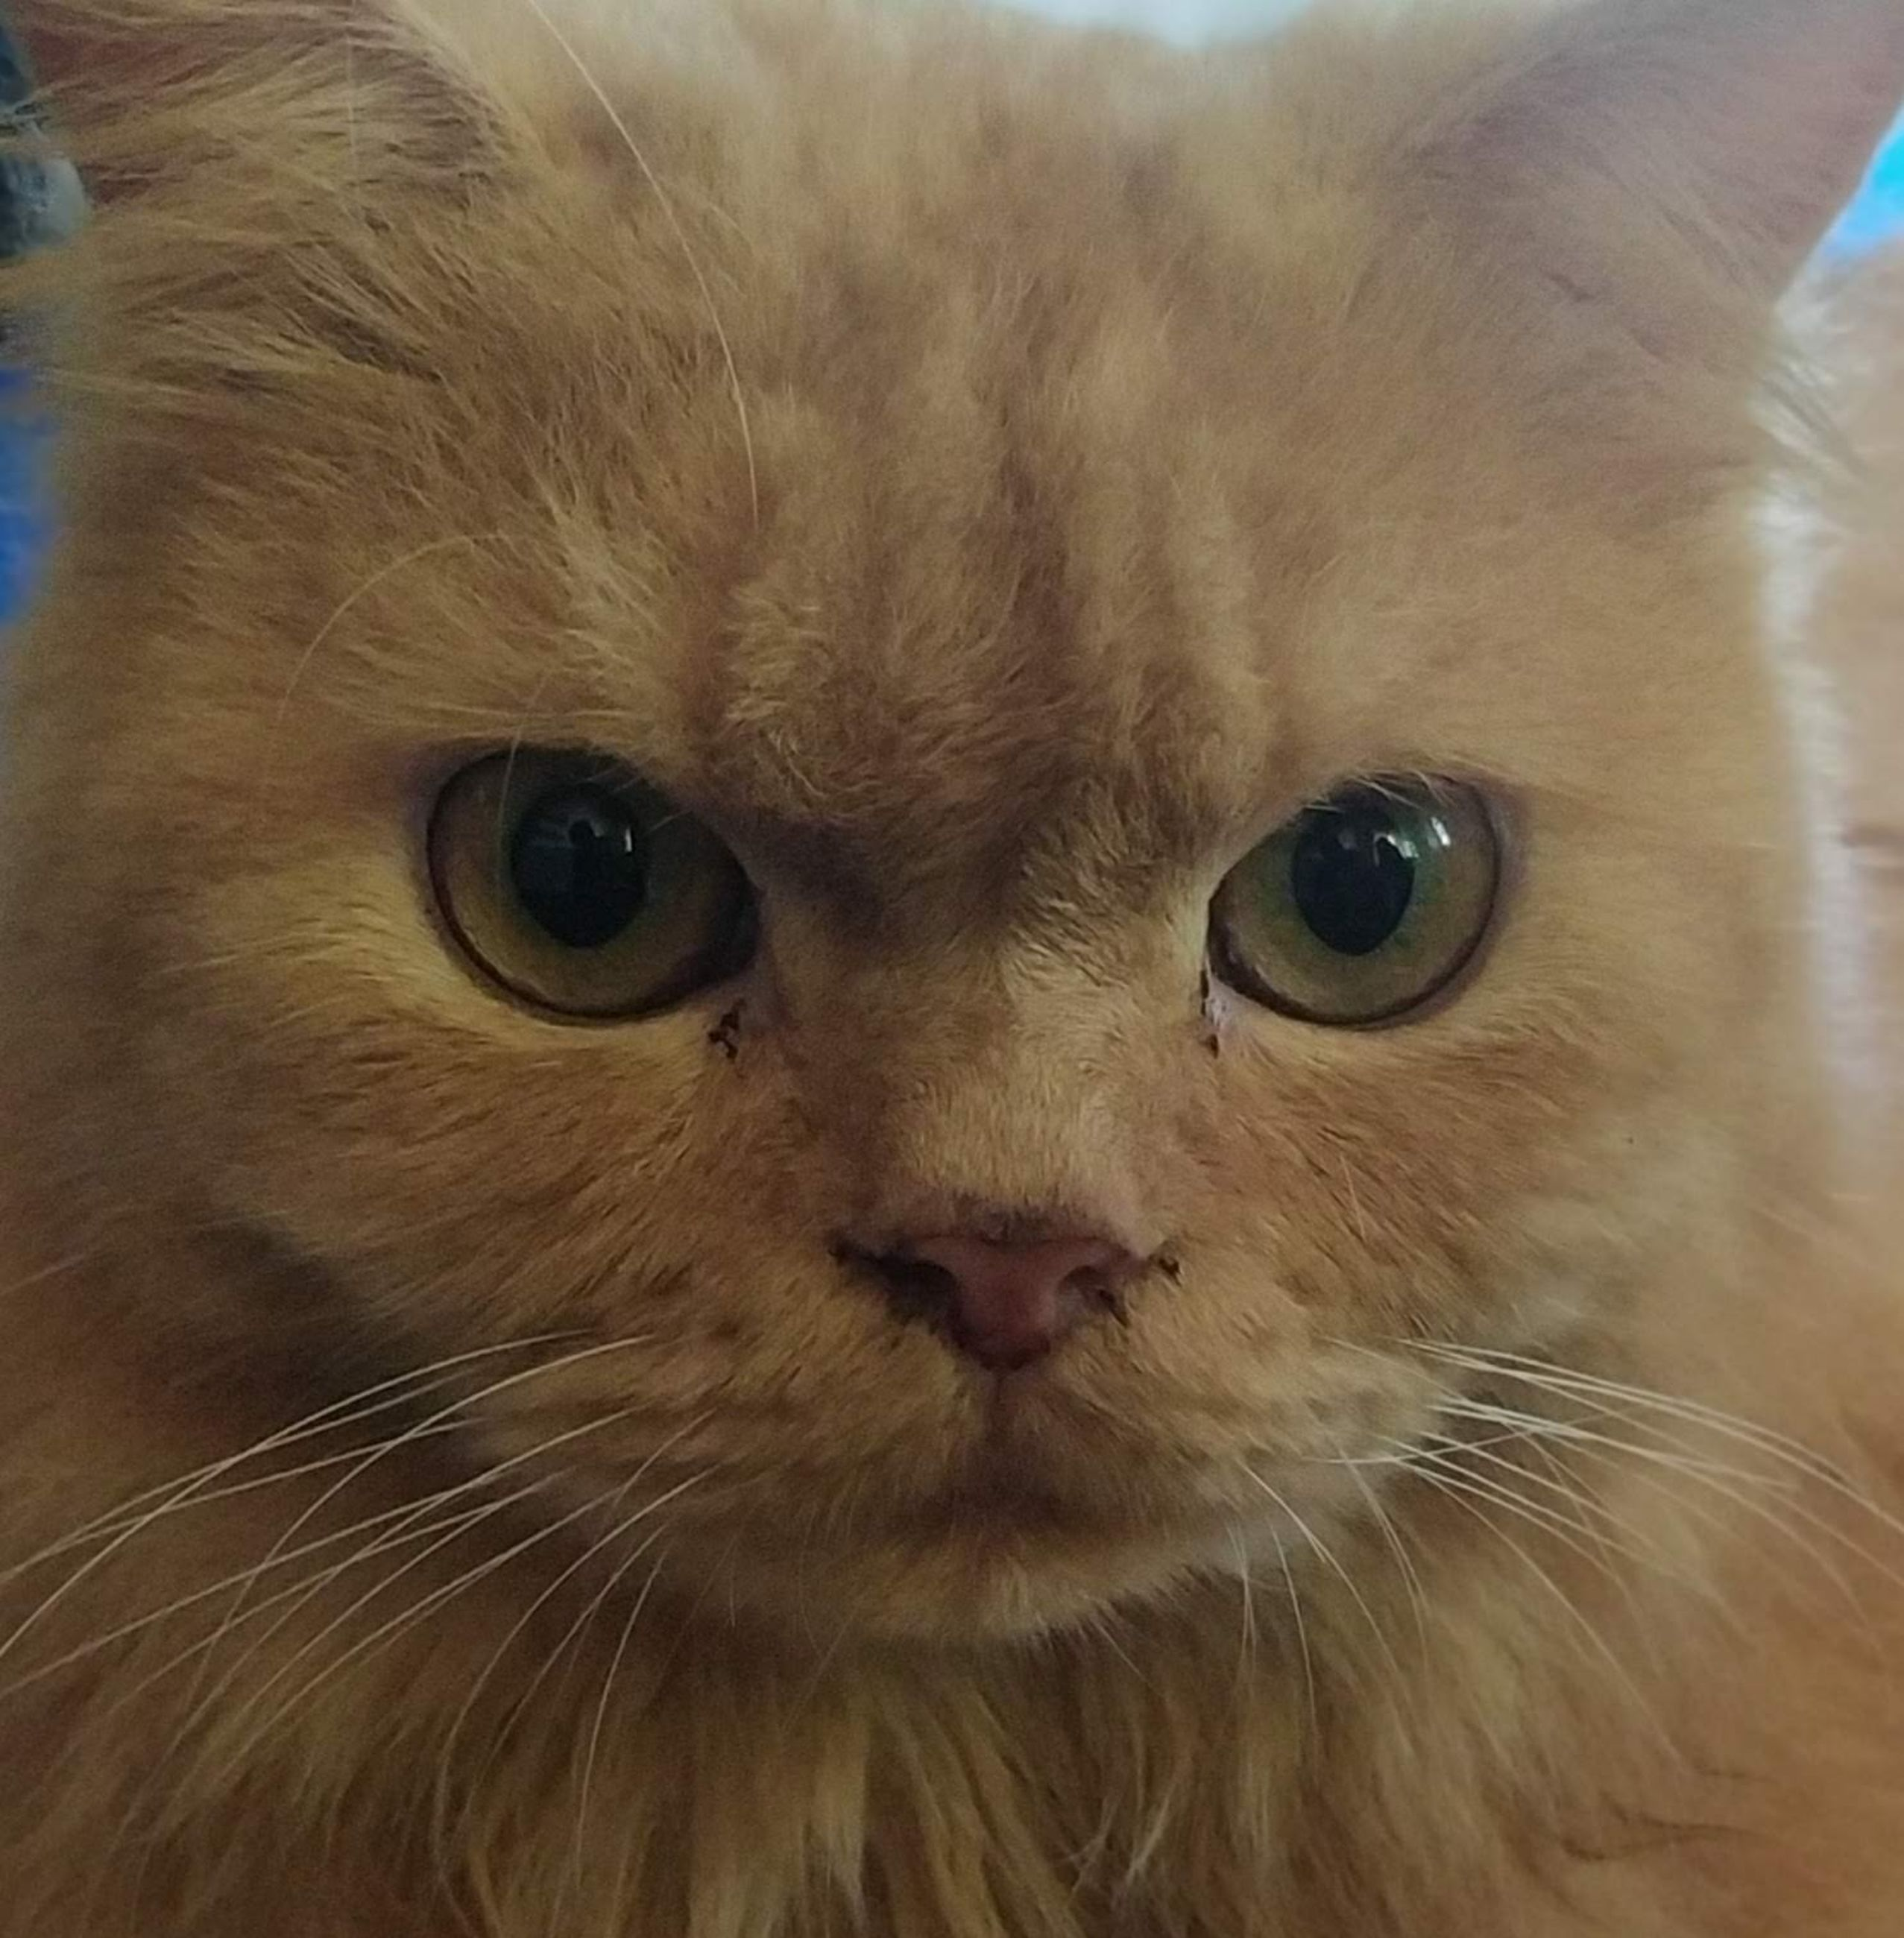 cat, pet, animal themes, animal, mammal, one animal, domestic animals, animal body part, feline, domestic cat, felidae, nose, whiskers, close-up, small to medium-sized cats, domestic long-haired cat, portrait, looking at camera, eye, animal head, british semi-longhair, animal hair, no people, carnivore, animal eye